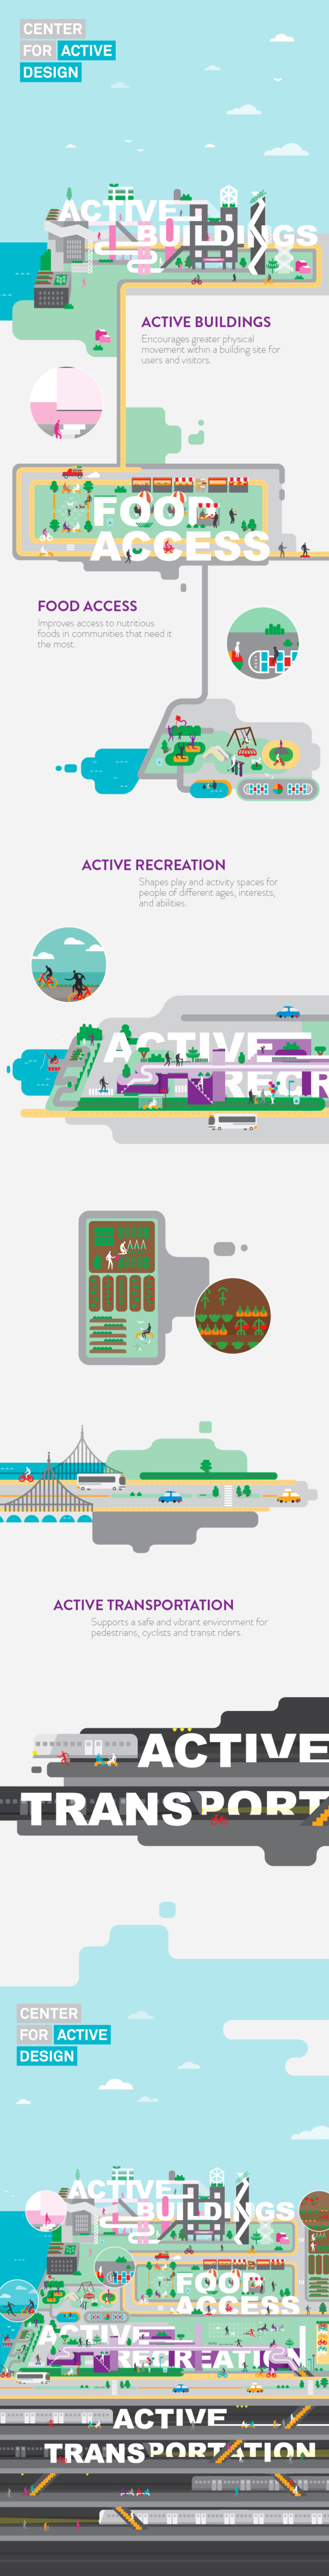 Infographic Illustration  Design and Animation by SQUAT New York